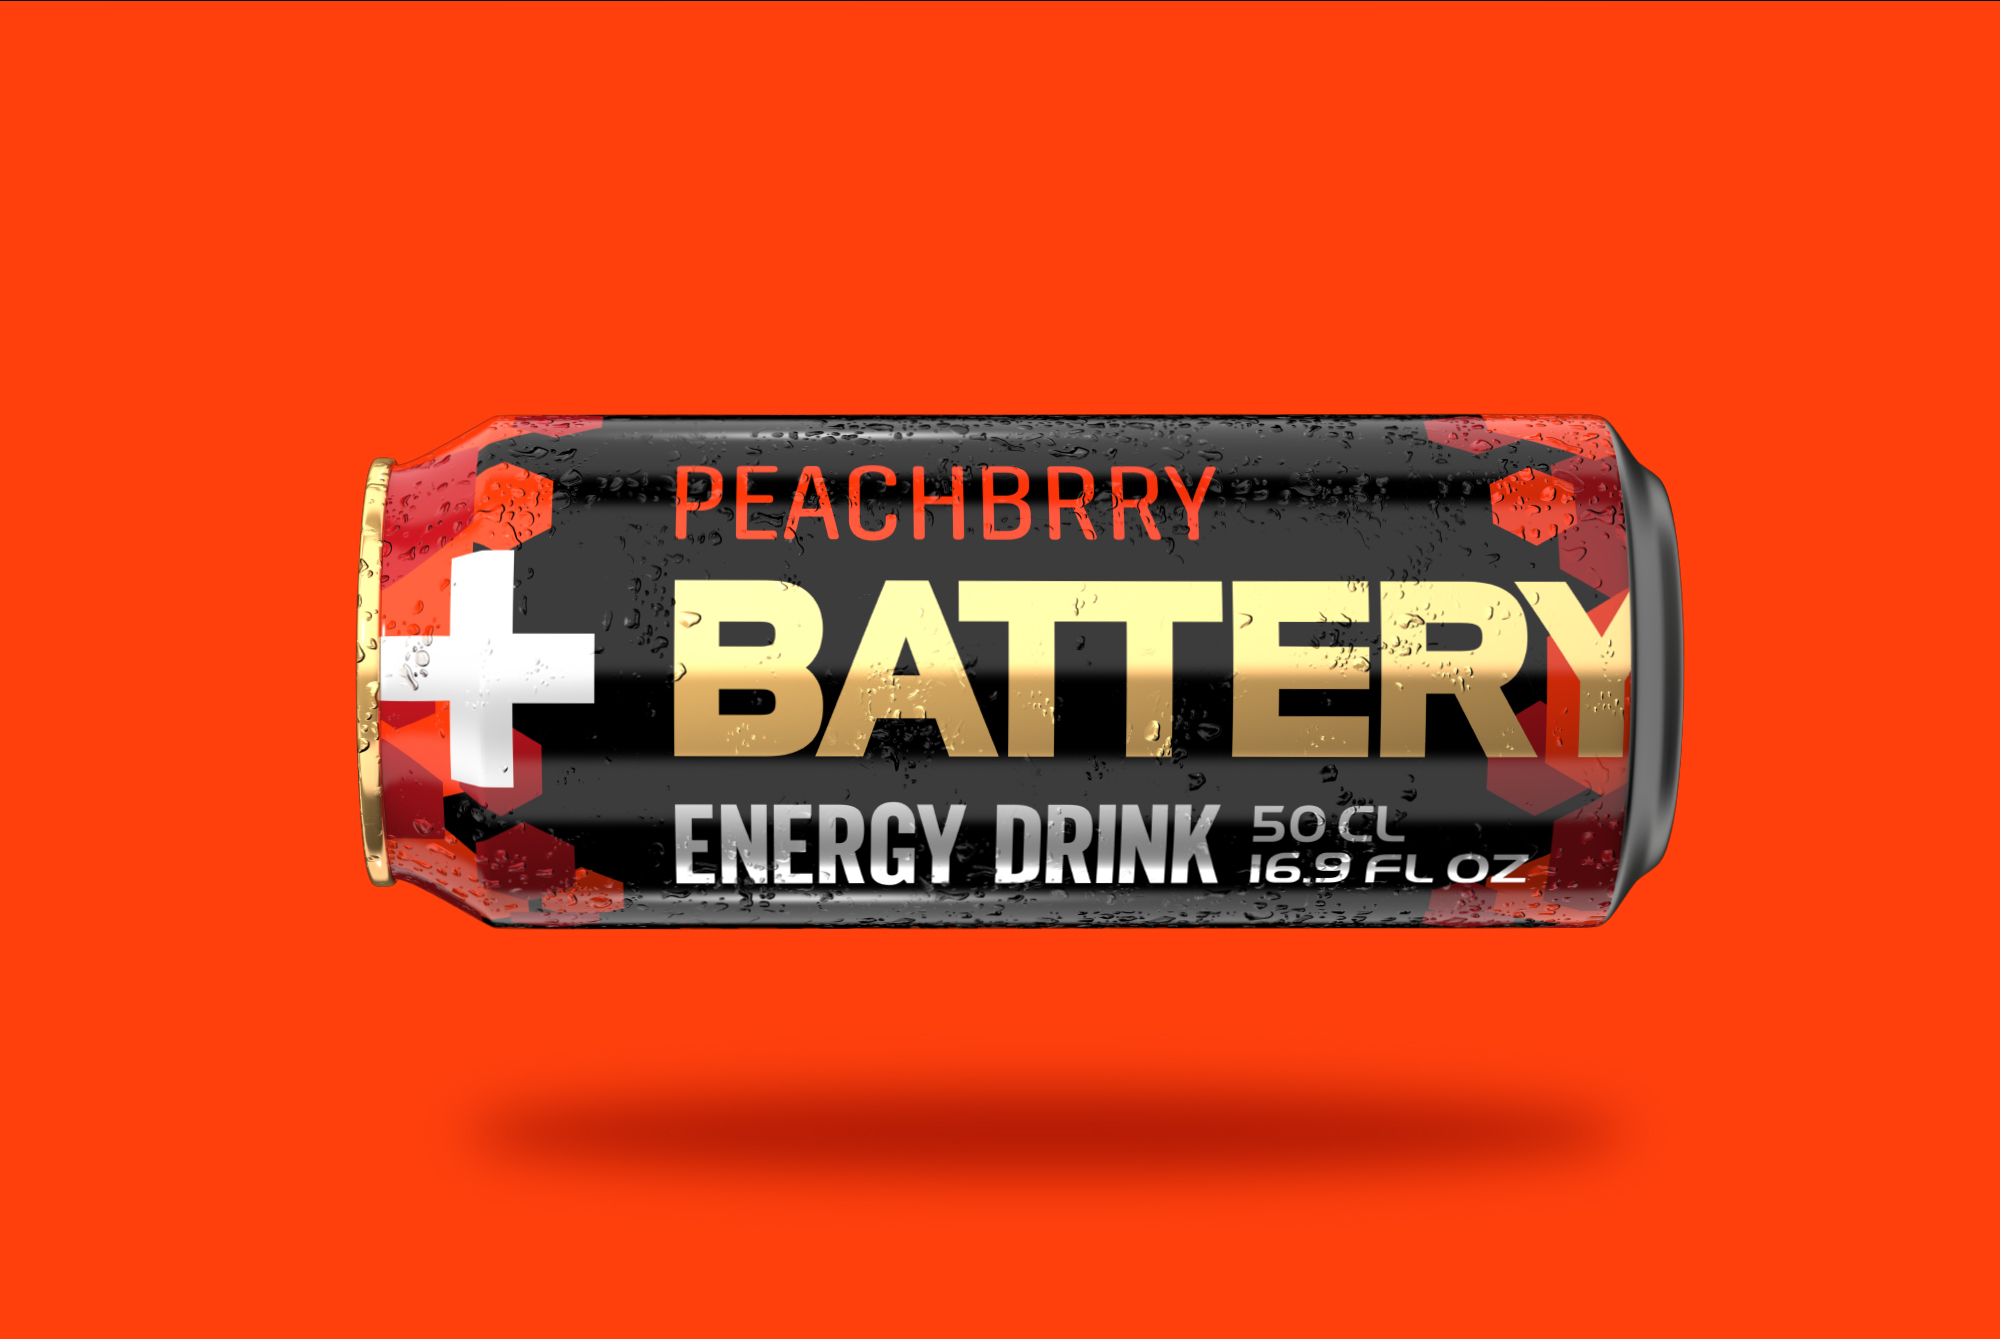 Battery peachbrry - floating can